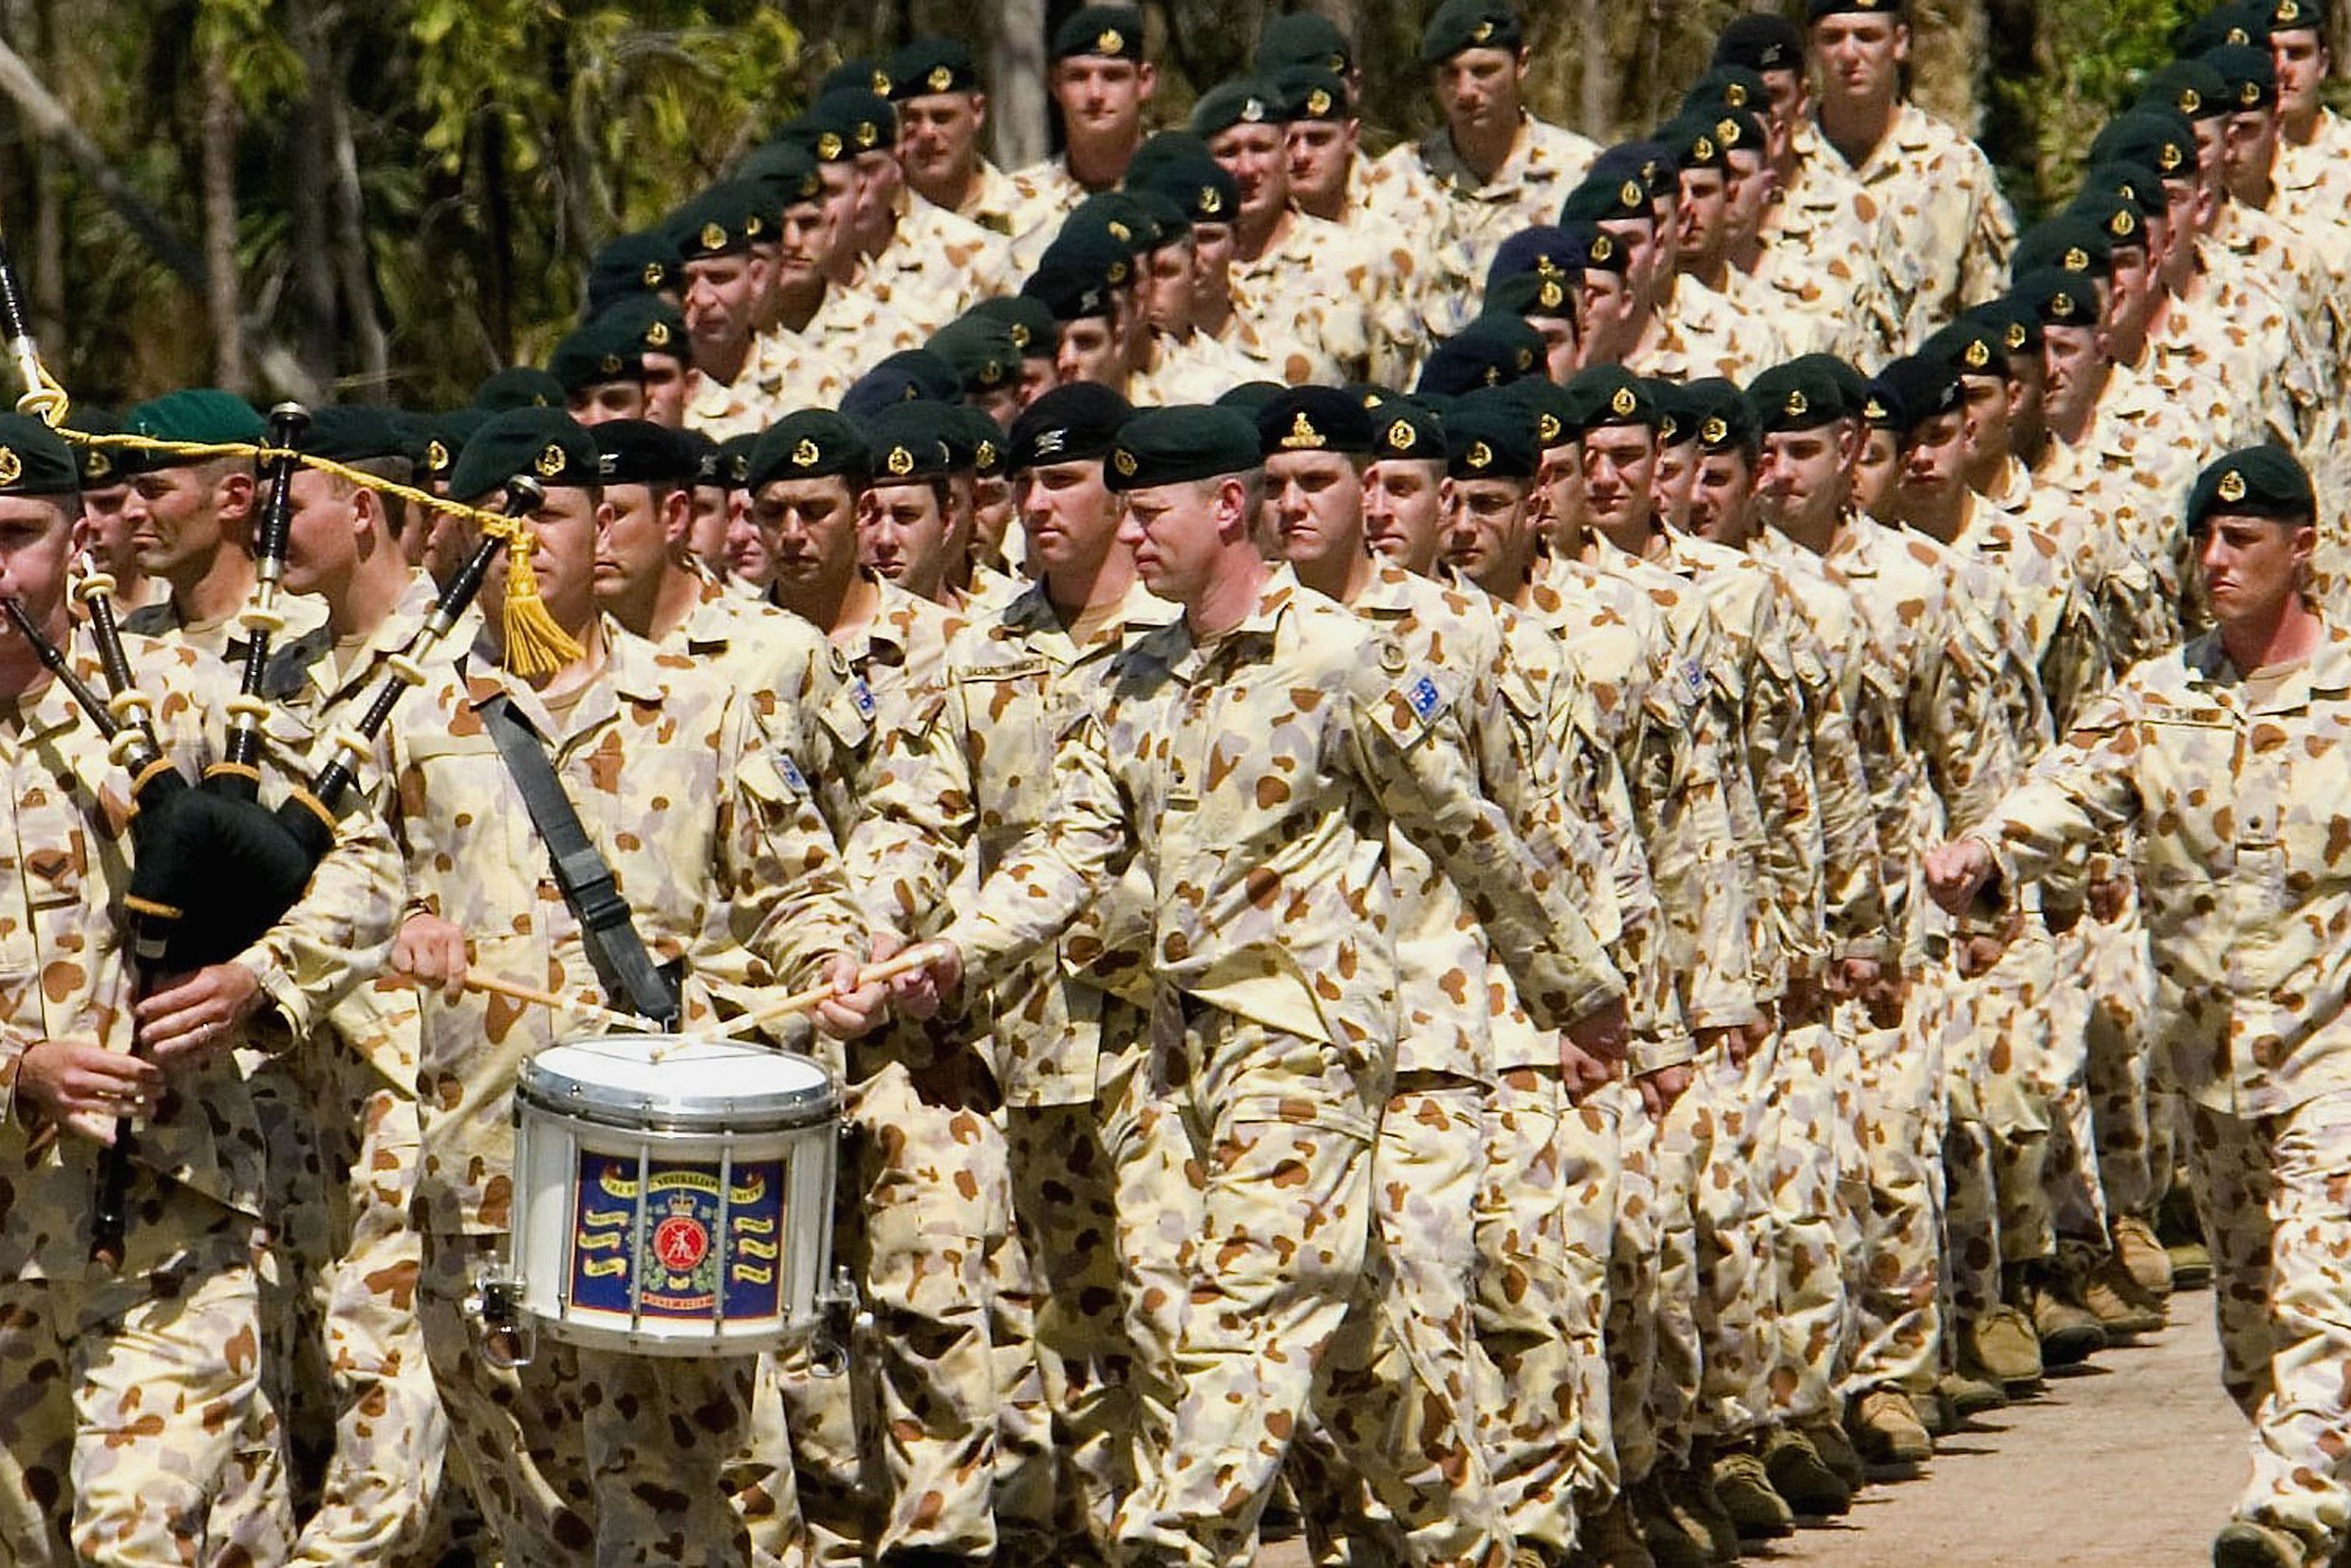 dating australian soldiers The australian army catering corps (aacc) is the corps within the australian army that is responsible for preparing and serving of meals.